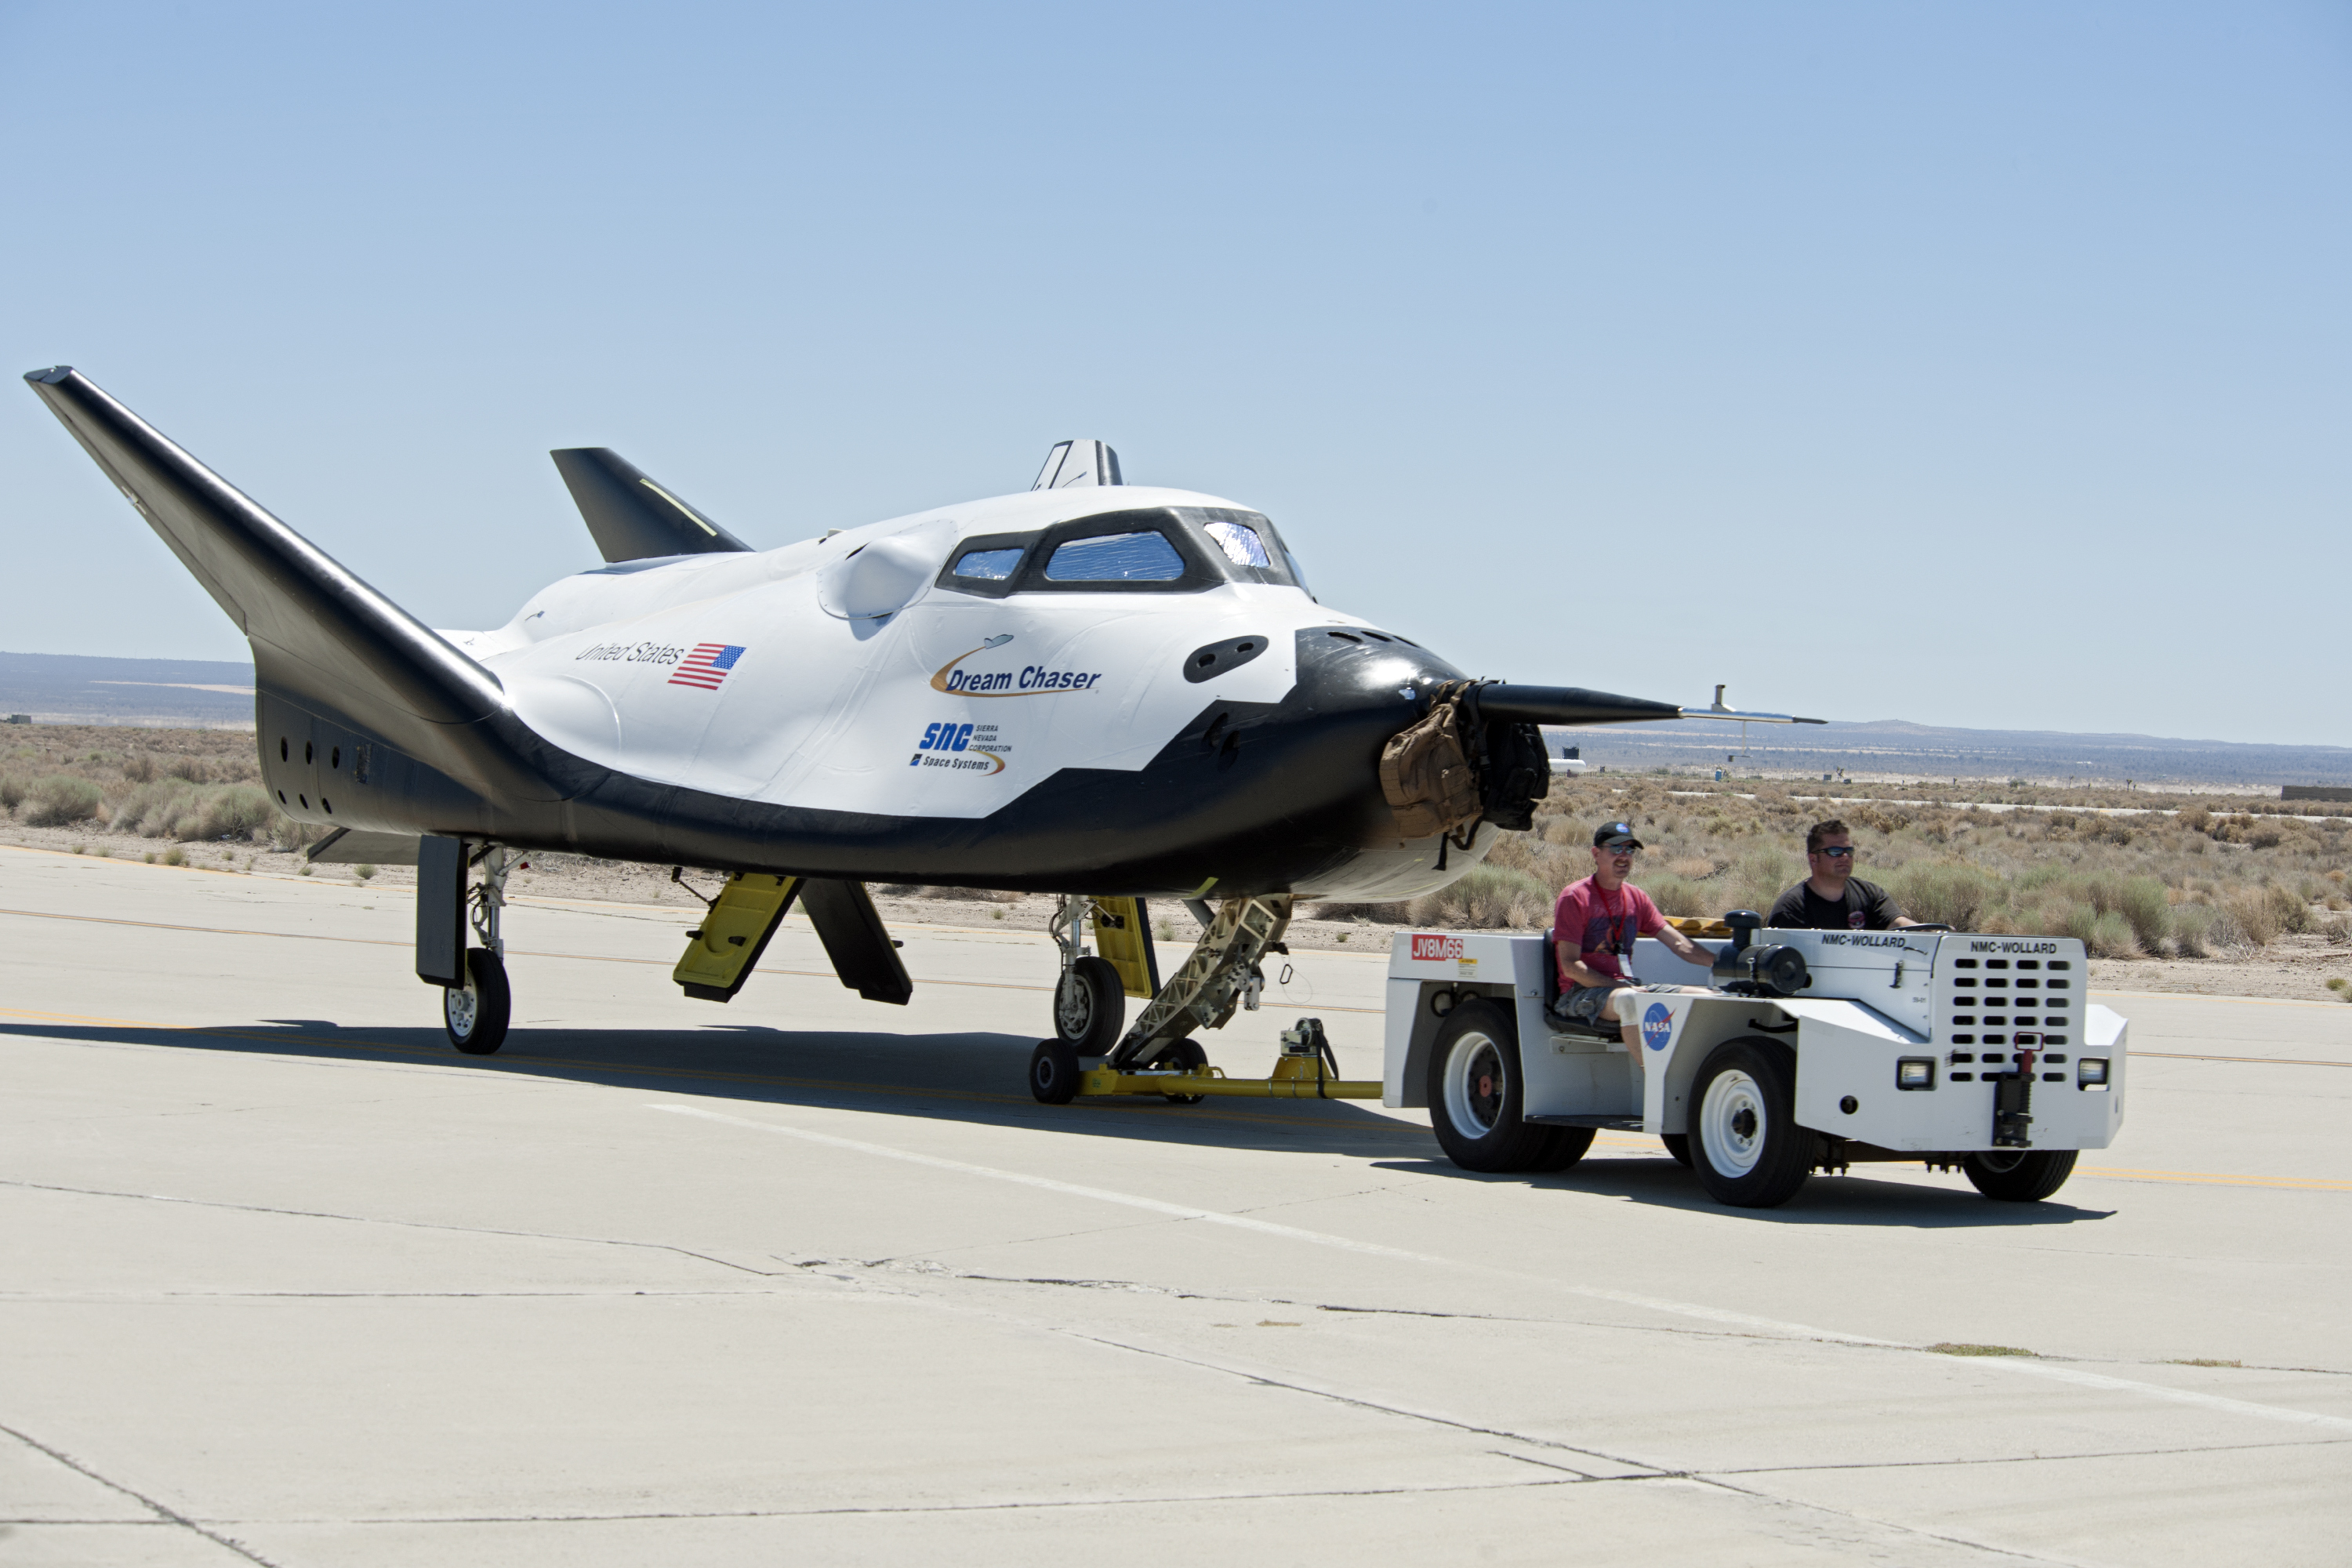 https://upload.wikimedia.org/wikipedia/commons/f/f8/Dream_Chaser_pre-drop_tests.3.jpg